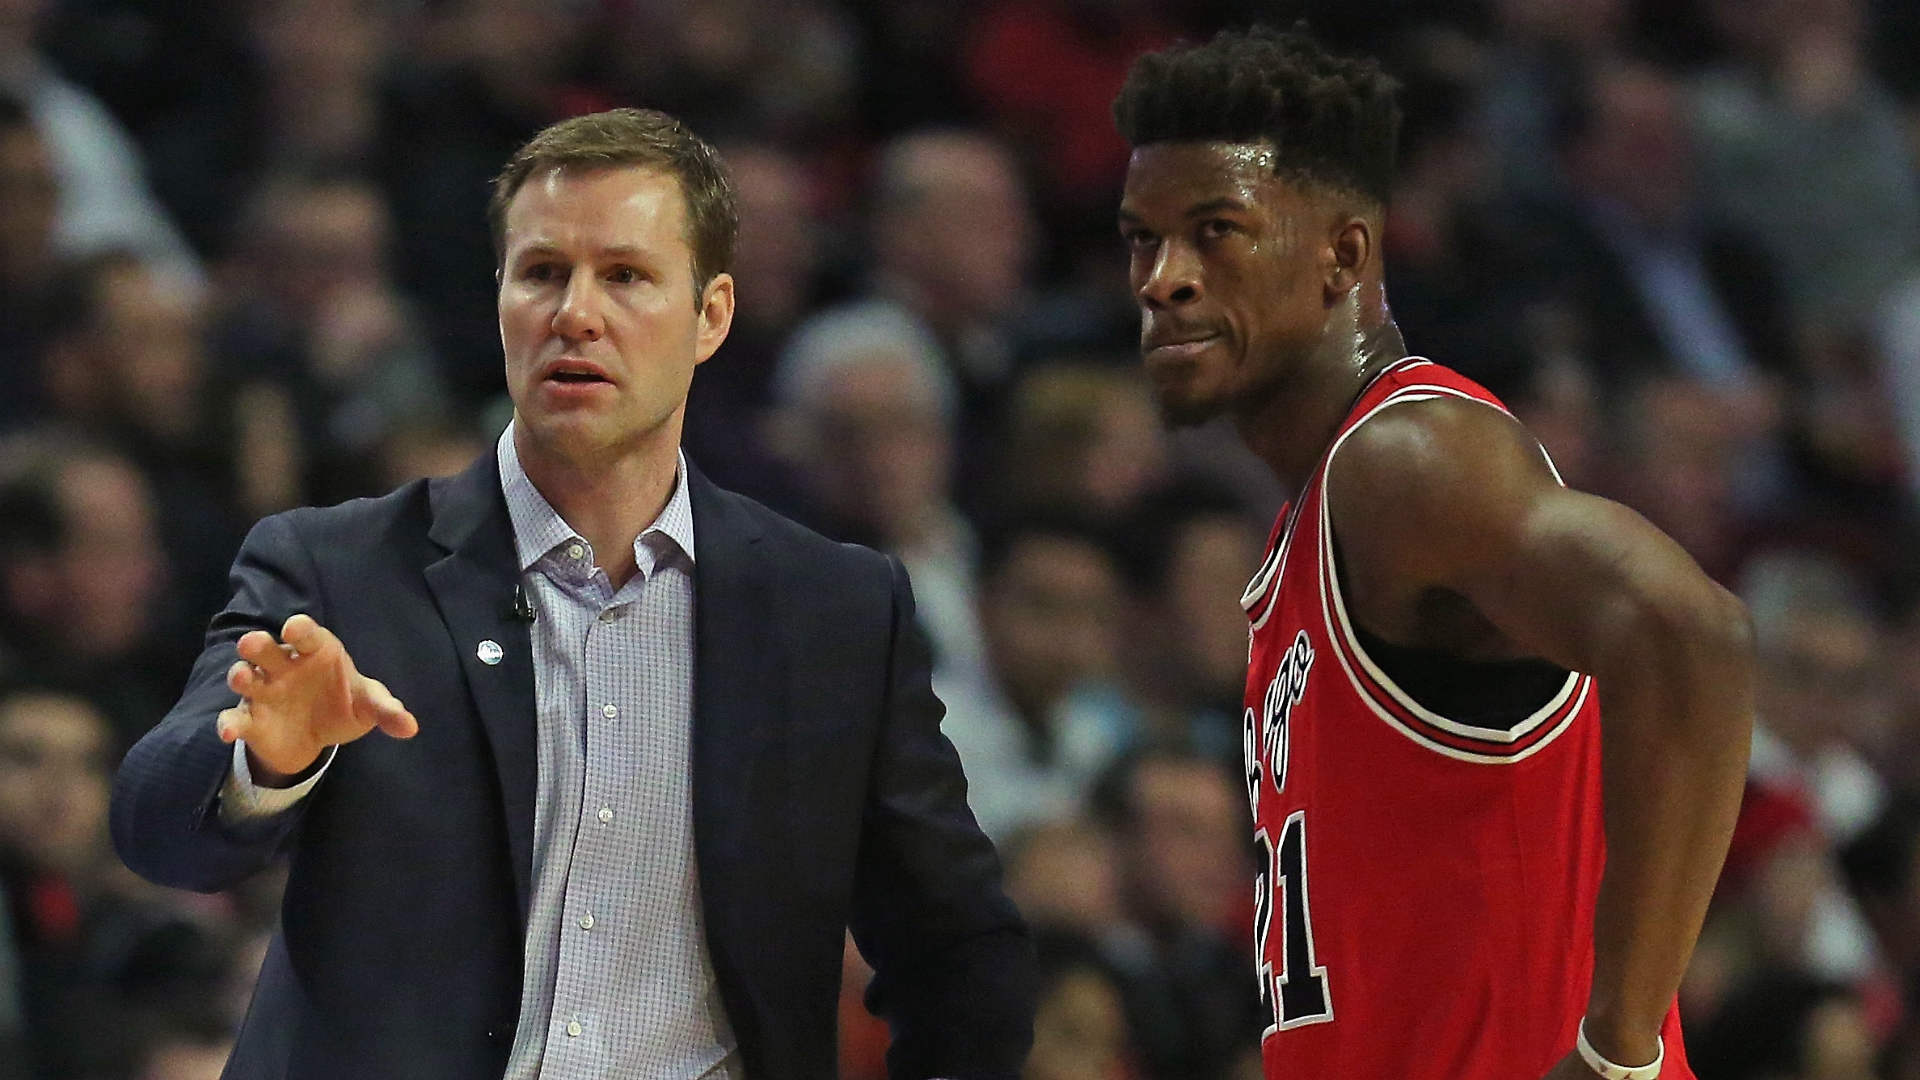 http://images.performgroup.com/di/library/omnisport/17/93/jimmy-butler-fred-hoiberg-412016-us-news-getty-ftr_lpgsepivc5751sm3llgka2sk1.jpg?t=-763833461